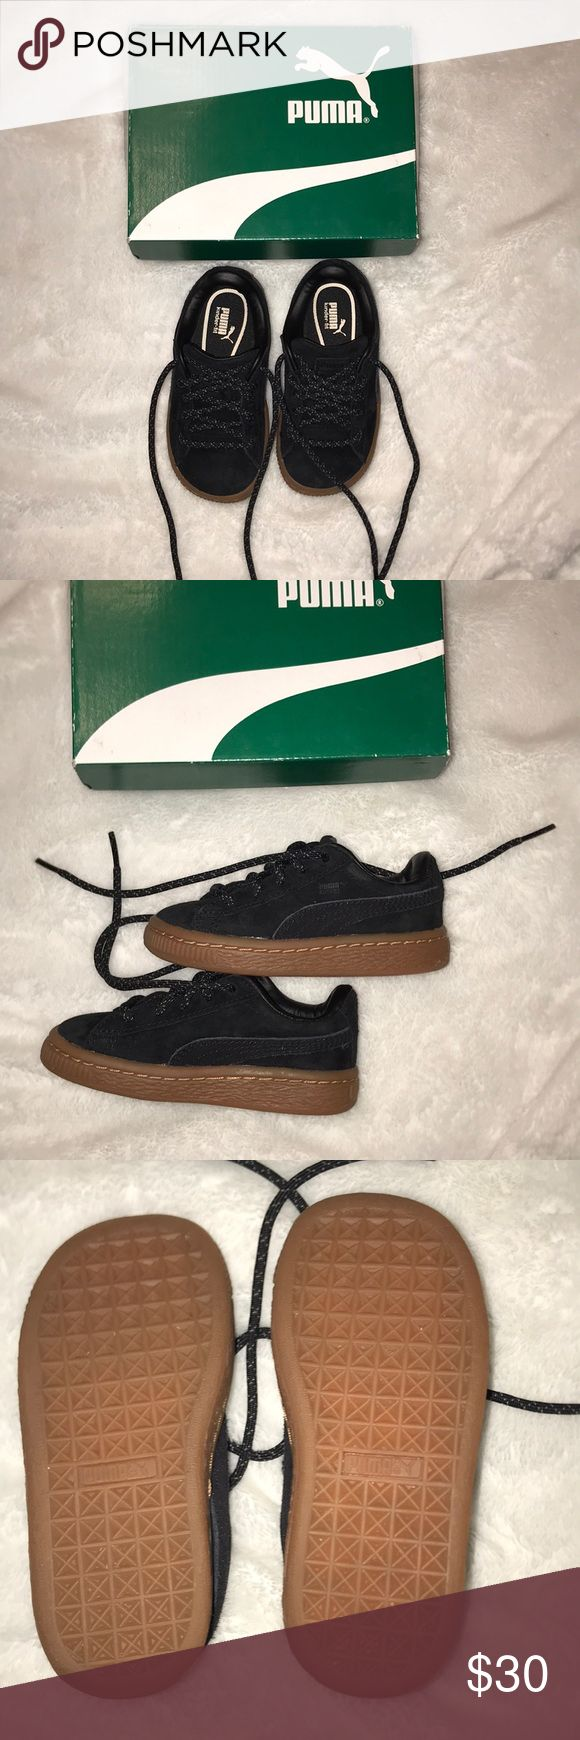 Authentic Puma suede upper rubber sole worn once Puma basket classic black suede with rubber sole in great condition Puma Shoes Sneakers